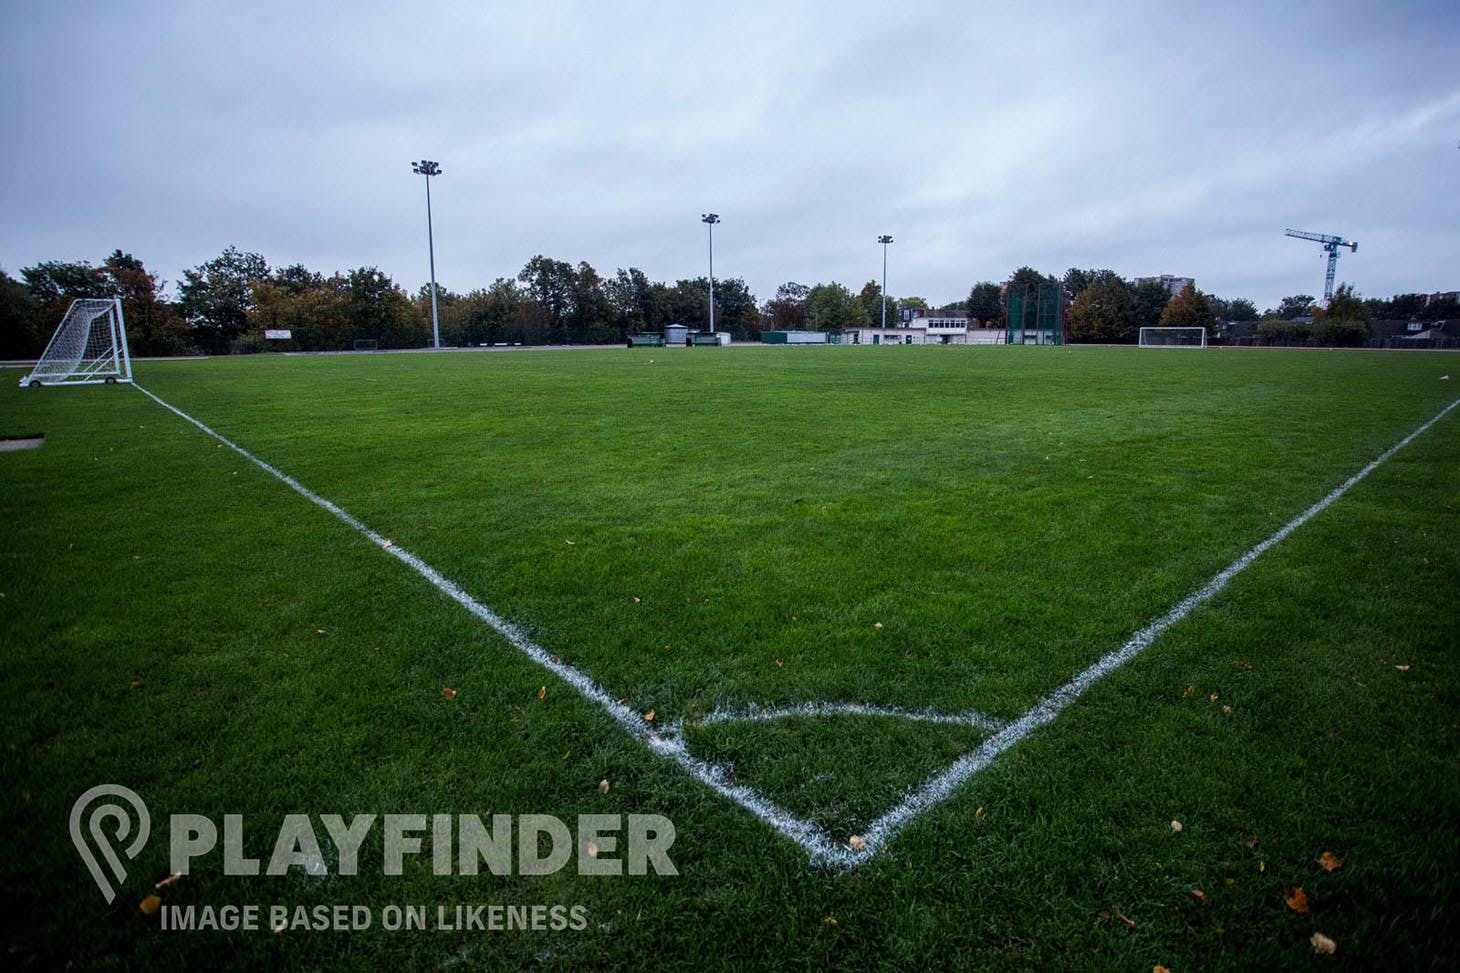 Sale Sports Club Rugby Pitches 11 a side | Grass football pitch